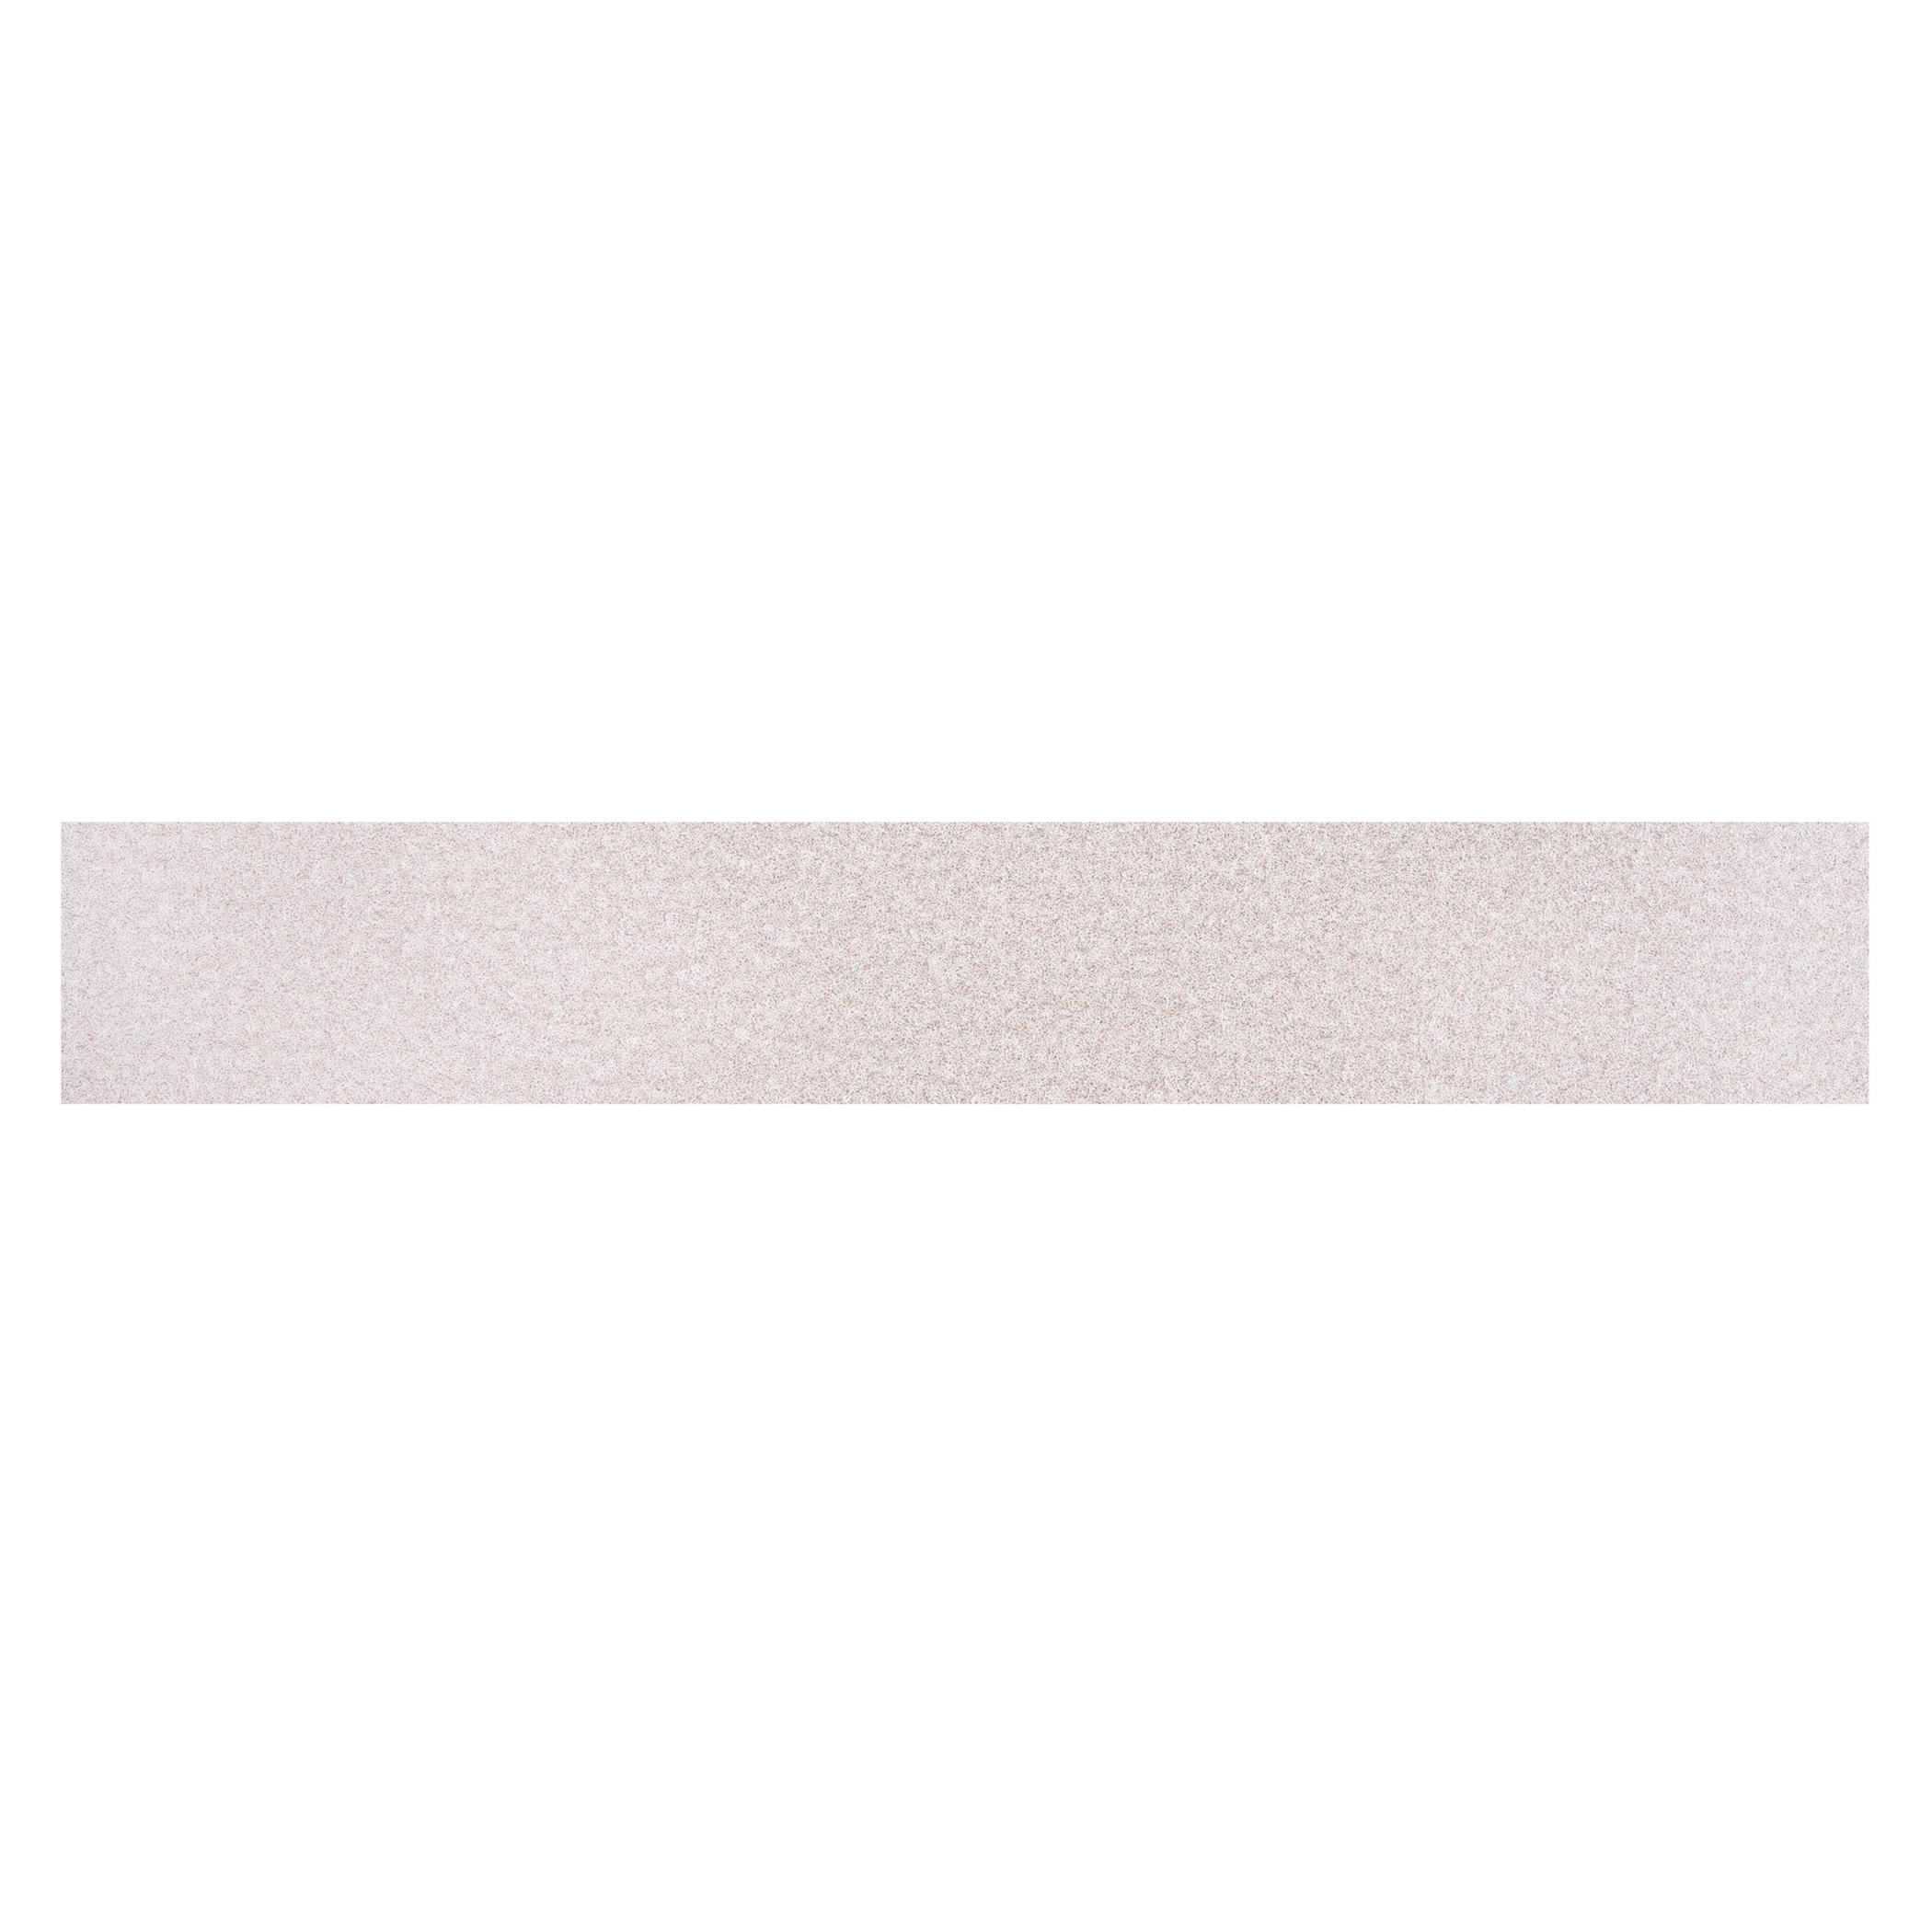 Norton® 66261131646 A275OP Hook and Loop Coated File Strip, 16-1/2 in L x 2-3/4 in W, P80 Grit, Coarse Grade, Aluminum Oxide Abrasive, Anti-Loading Paper Backing